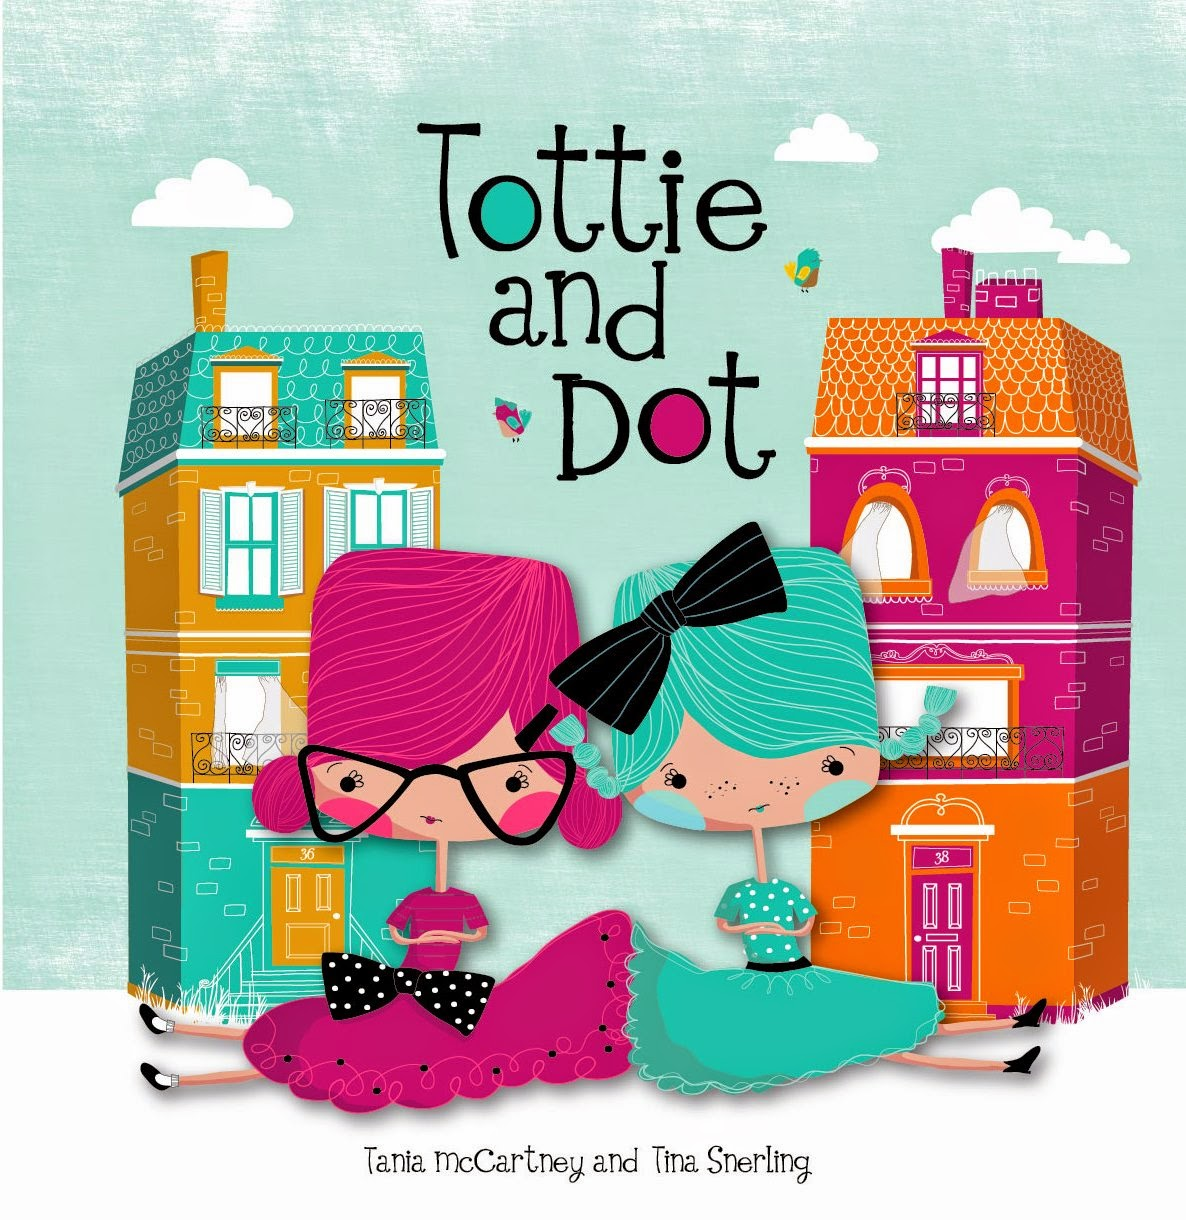 http://ekbooks.com.au/tottie-and-dot/